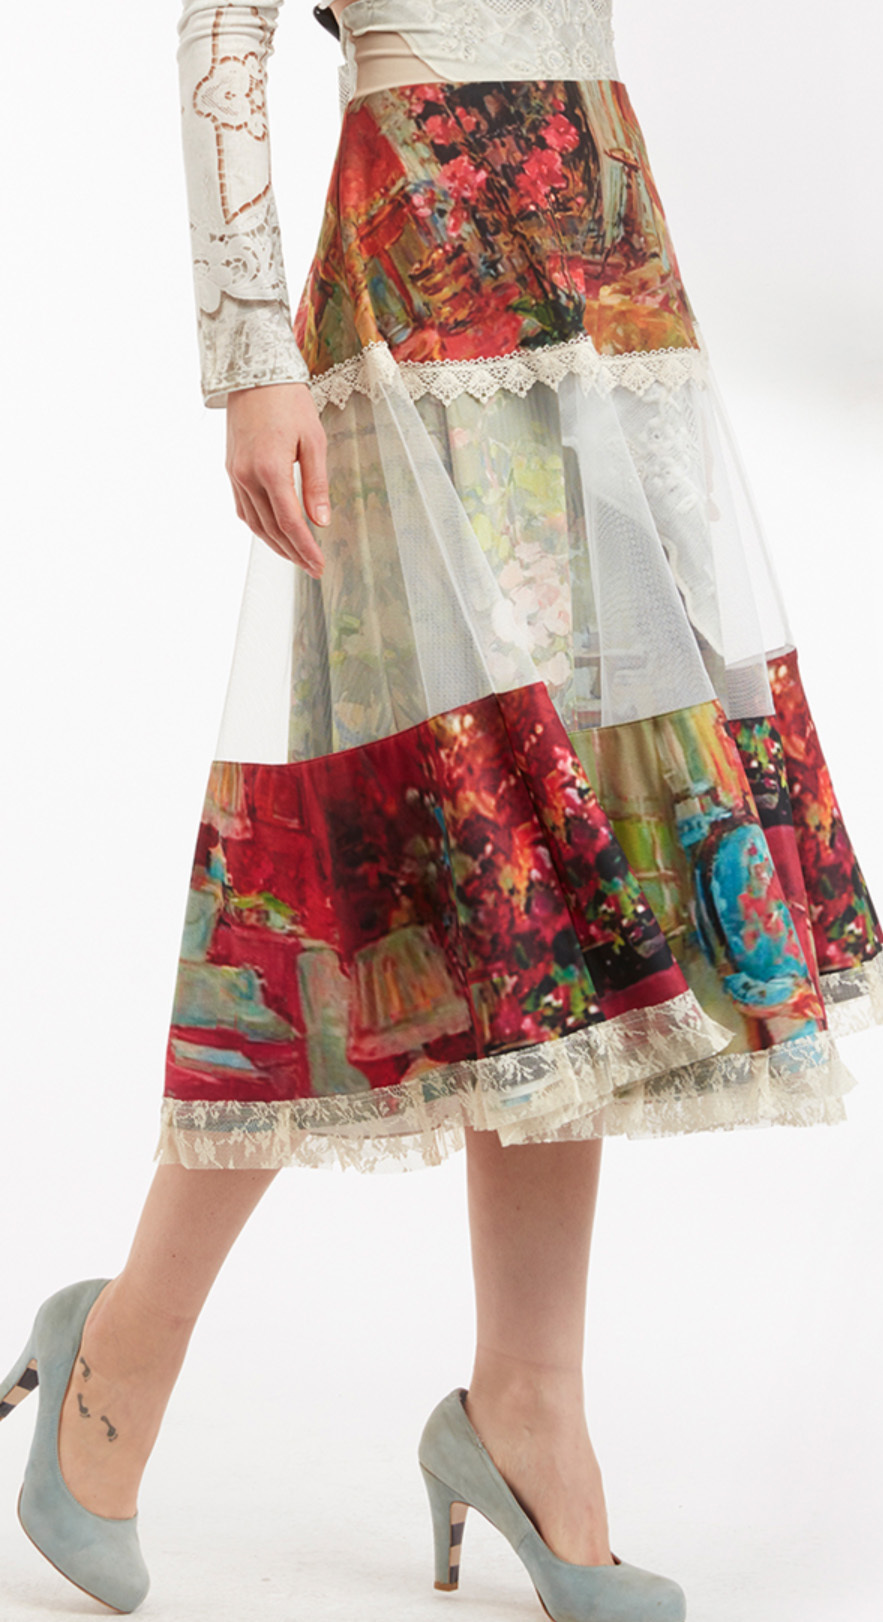 IPNG: Pink Living Room Illusion High Waist Poetic Layers Skirt